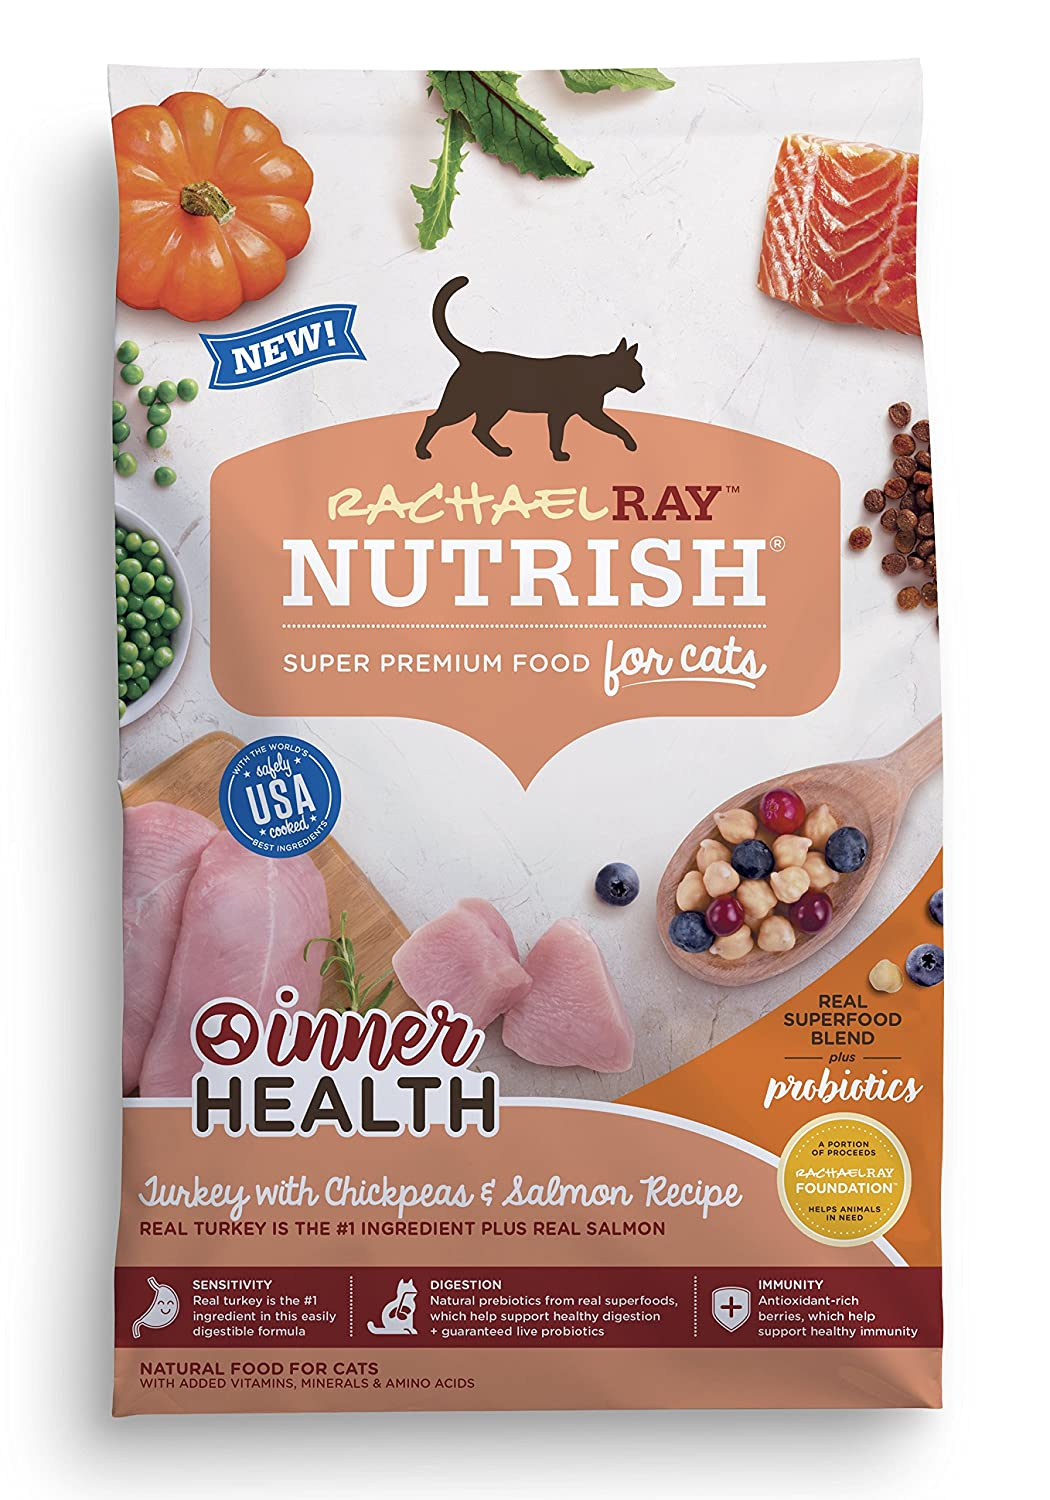 14-Lbs Rachael Ray Nutrish Inner Health SuperFood Blends Dry Cat Food $13 w/ S&S + Free Shipping w/ Amazon Prime